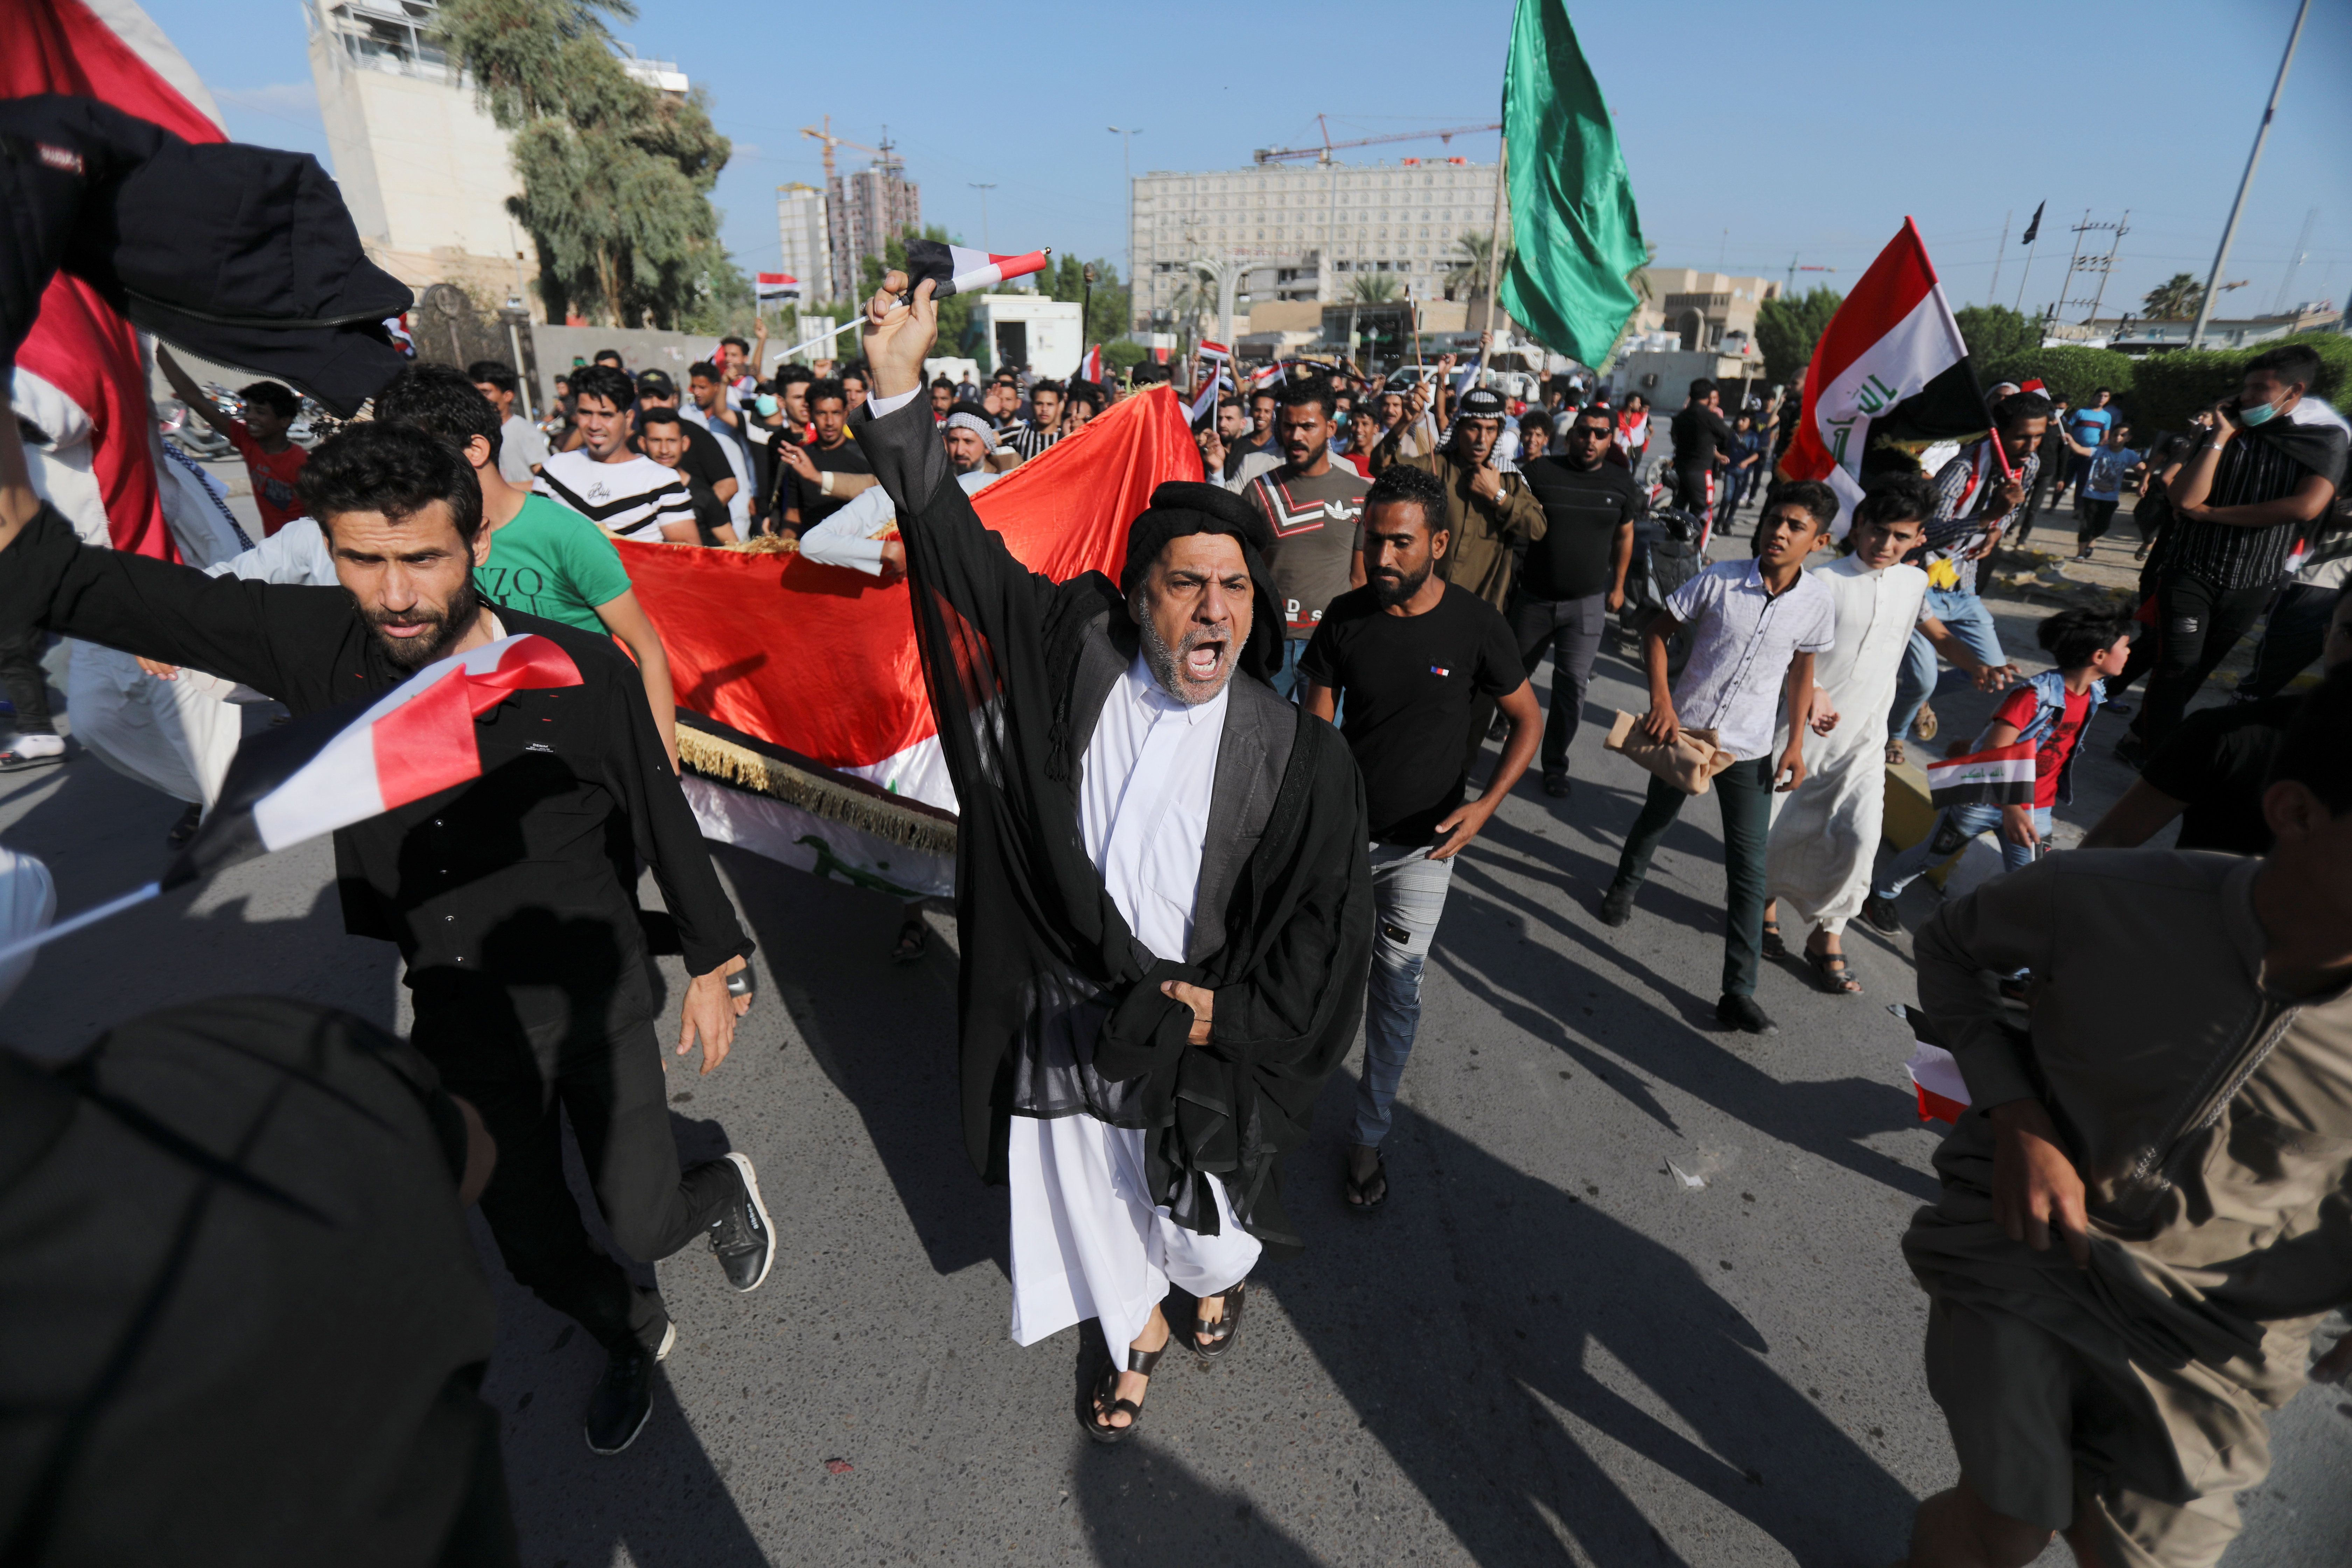 Iran isn't happy about the latest Middle East protests